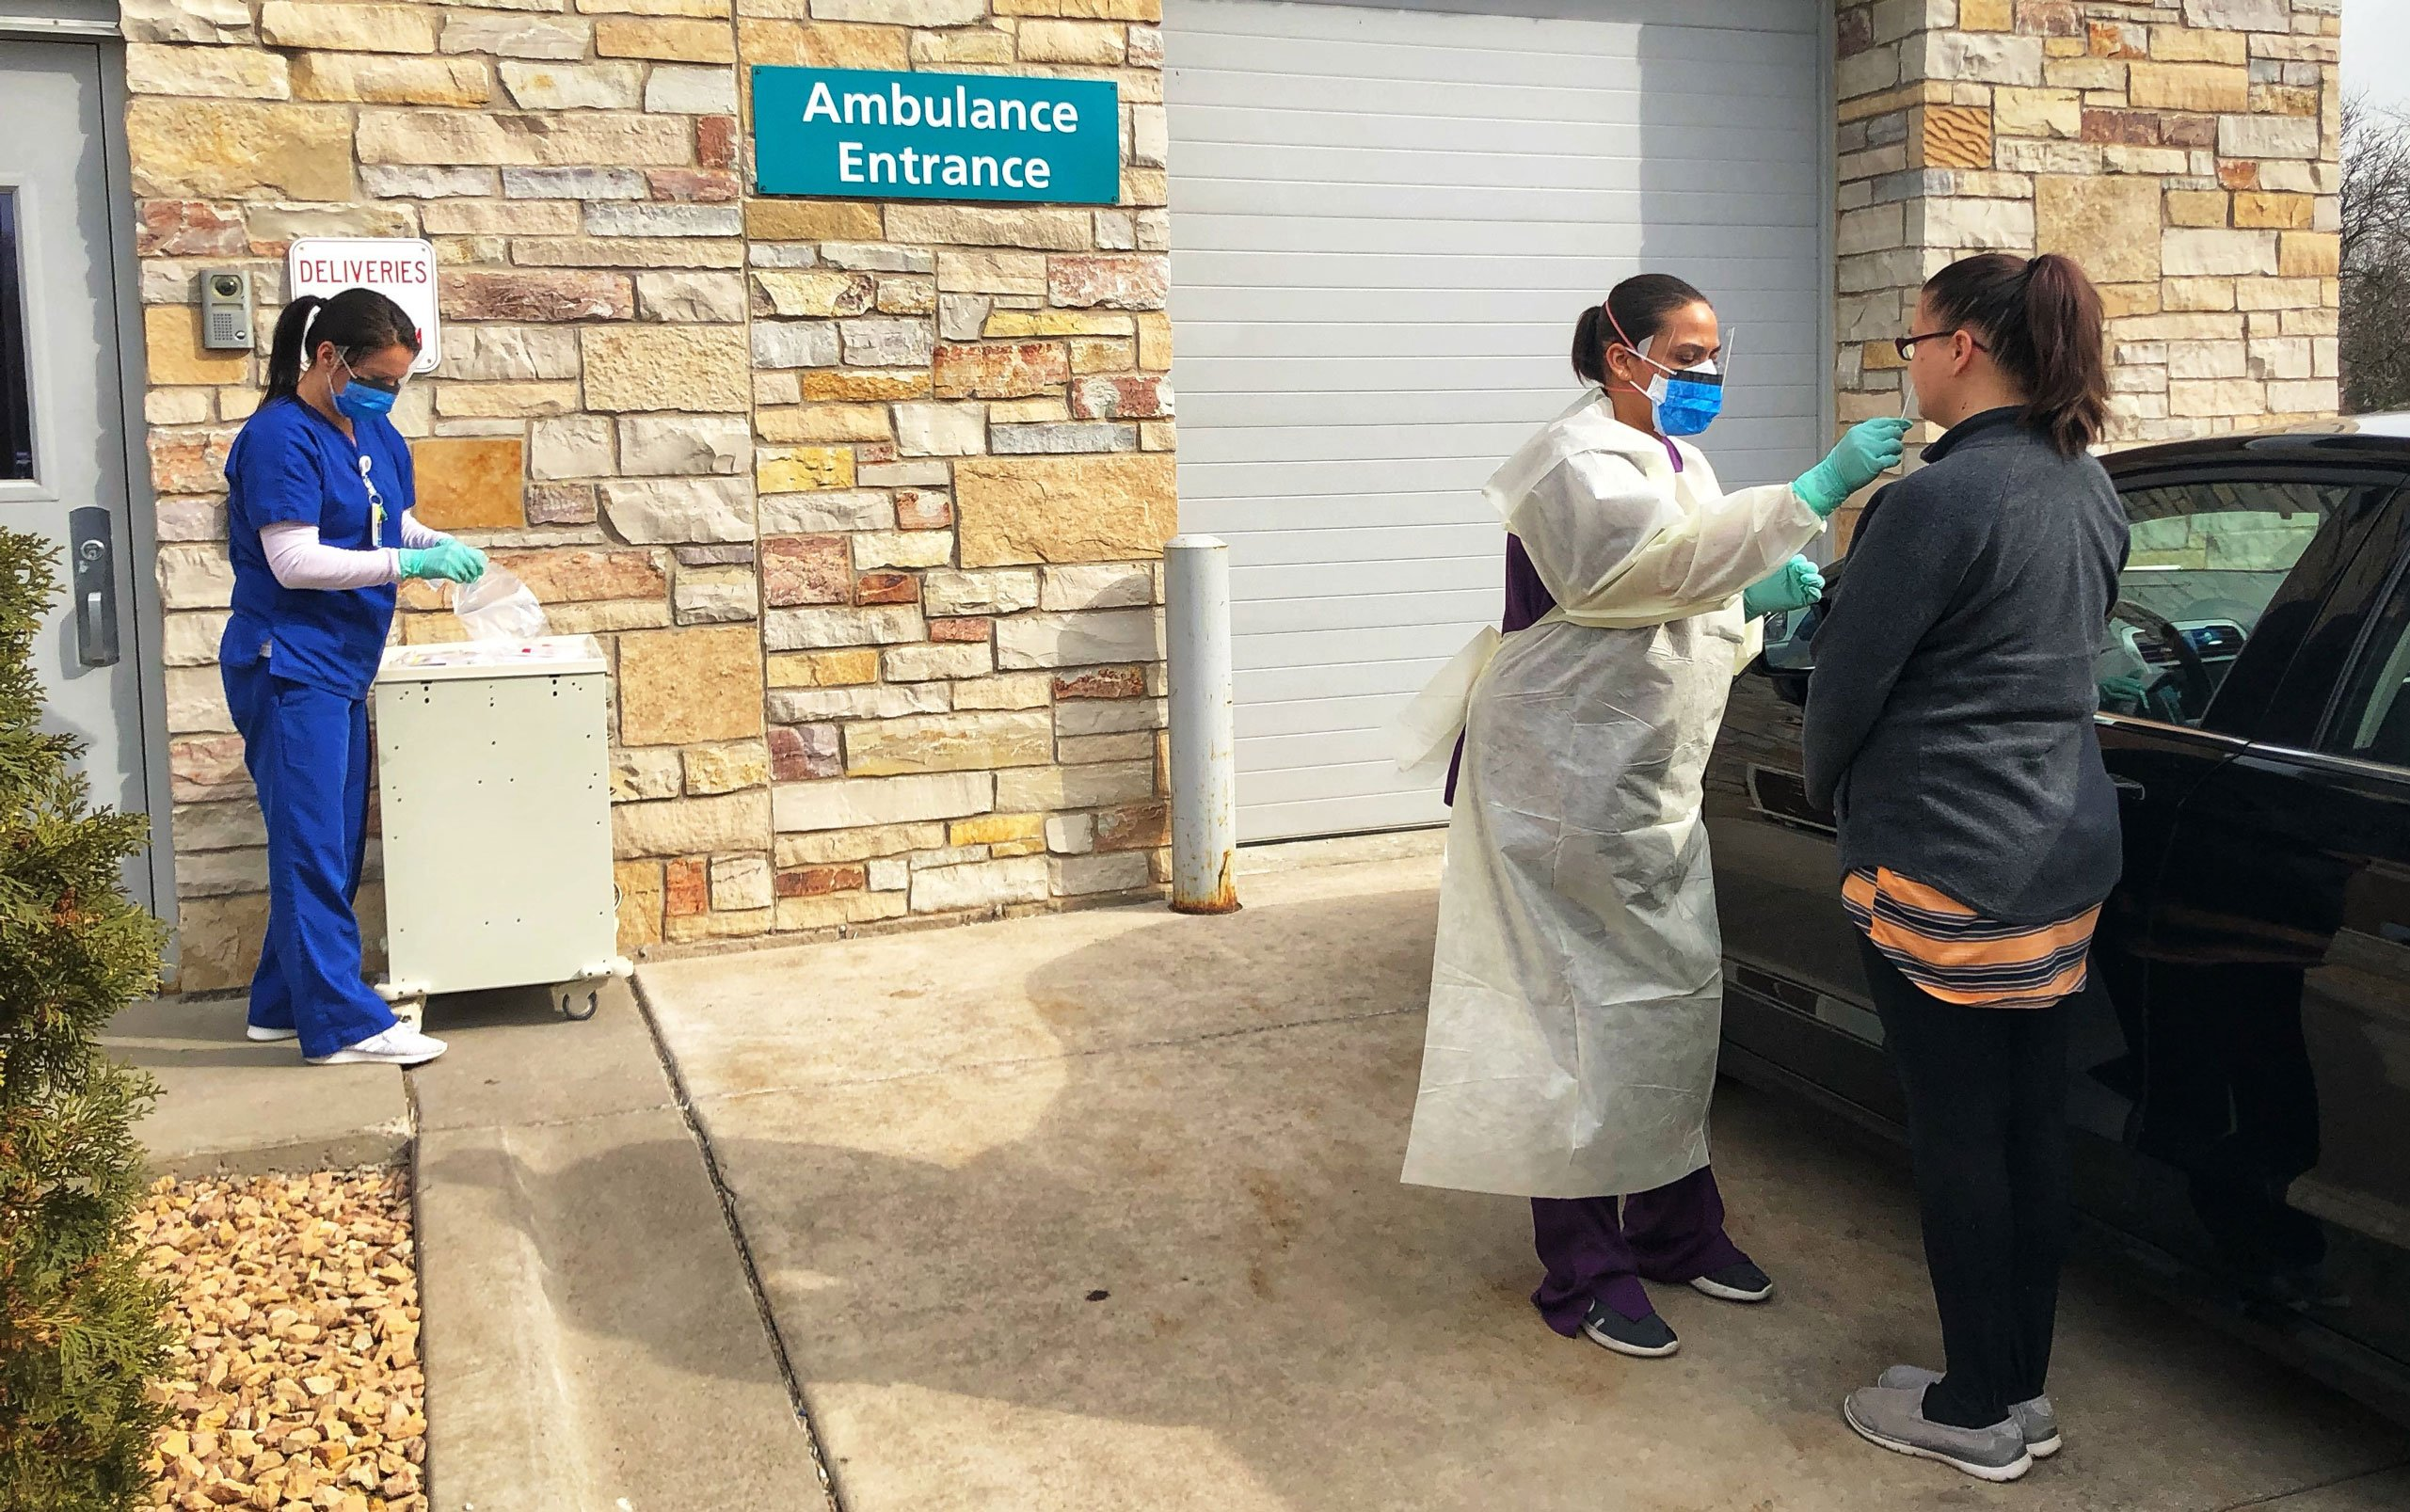 Drive Through Coronavirus Testing Launched By Hospitals In Parking Lots Garages